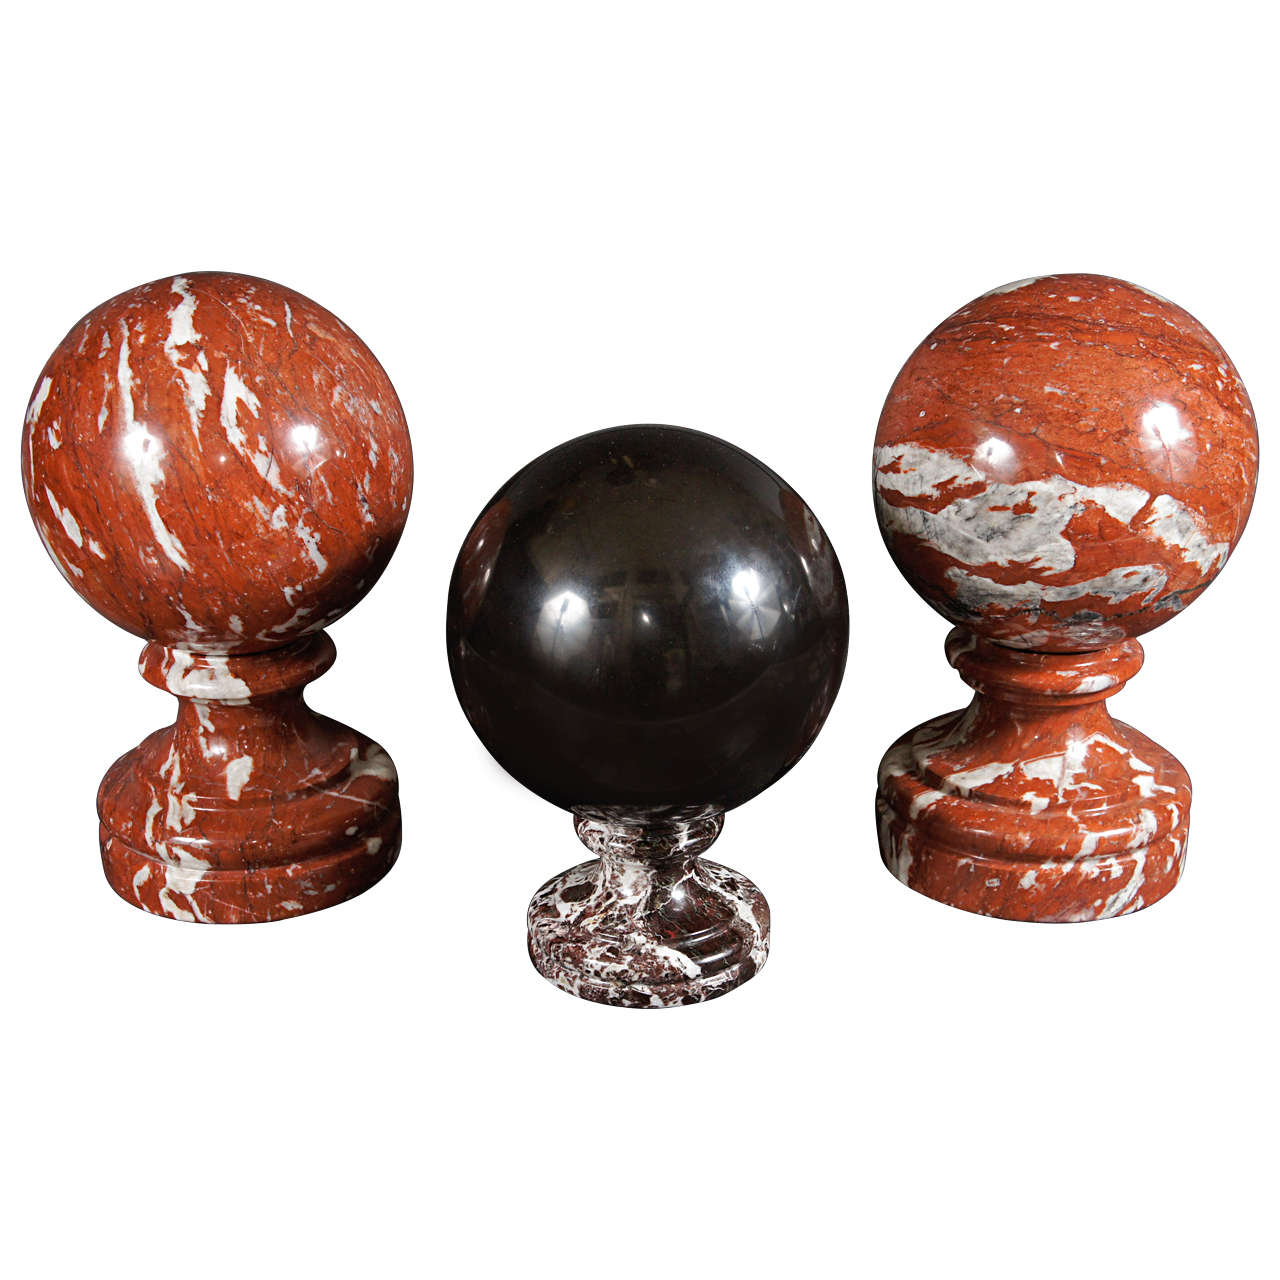 A Decorative Collection of Italian Specimen Marble Spheres on Stands